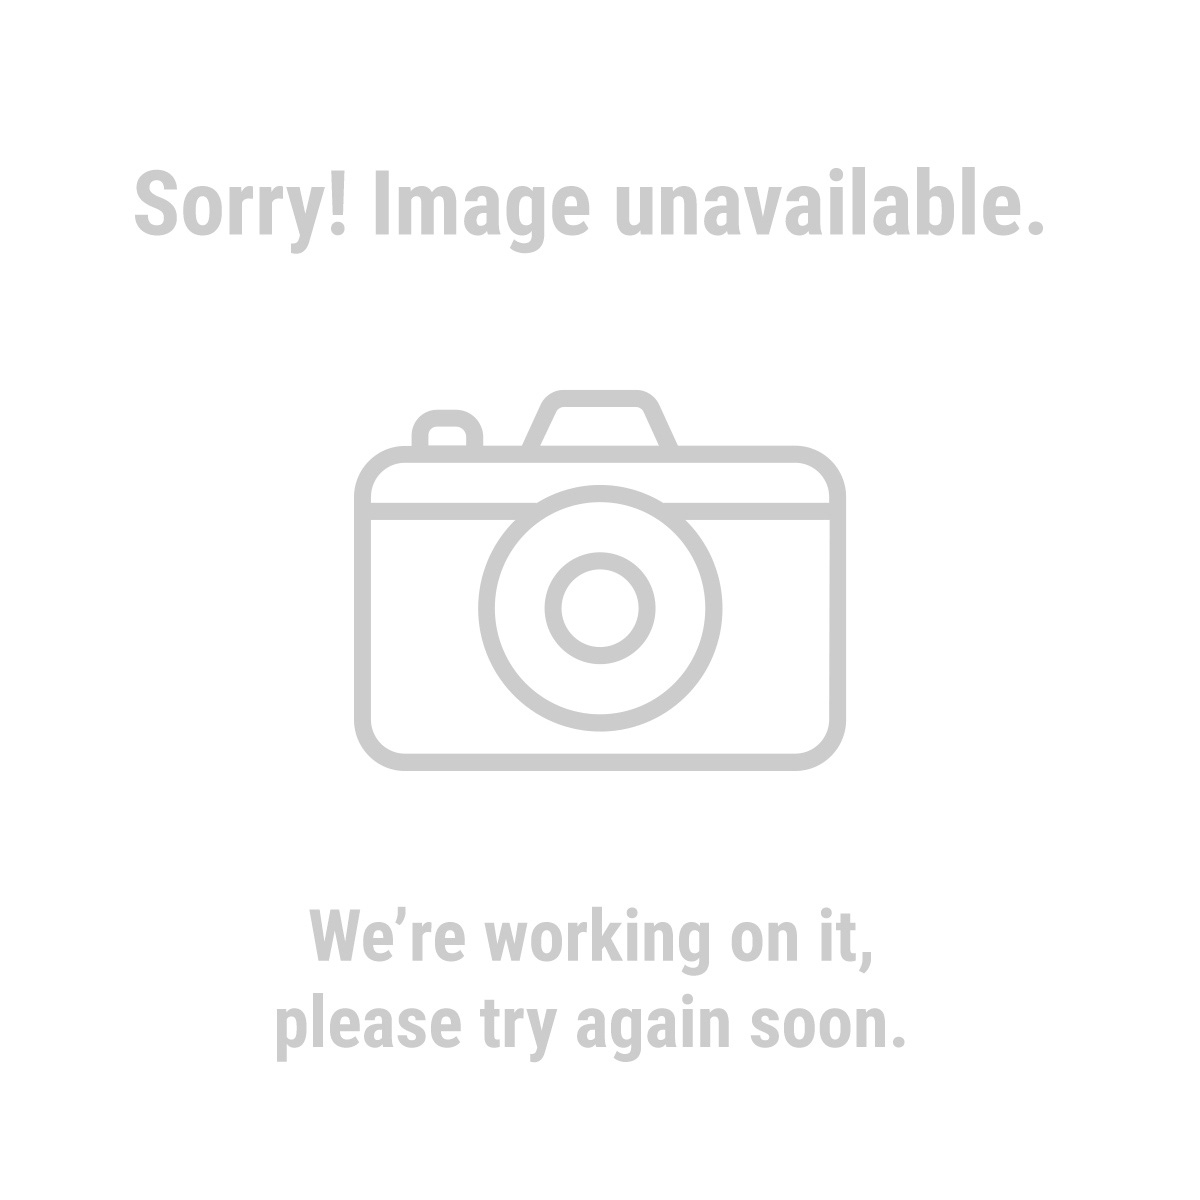 Predator Engines 69733 79 cc OHV Horizontal Shaft Gas Engine